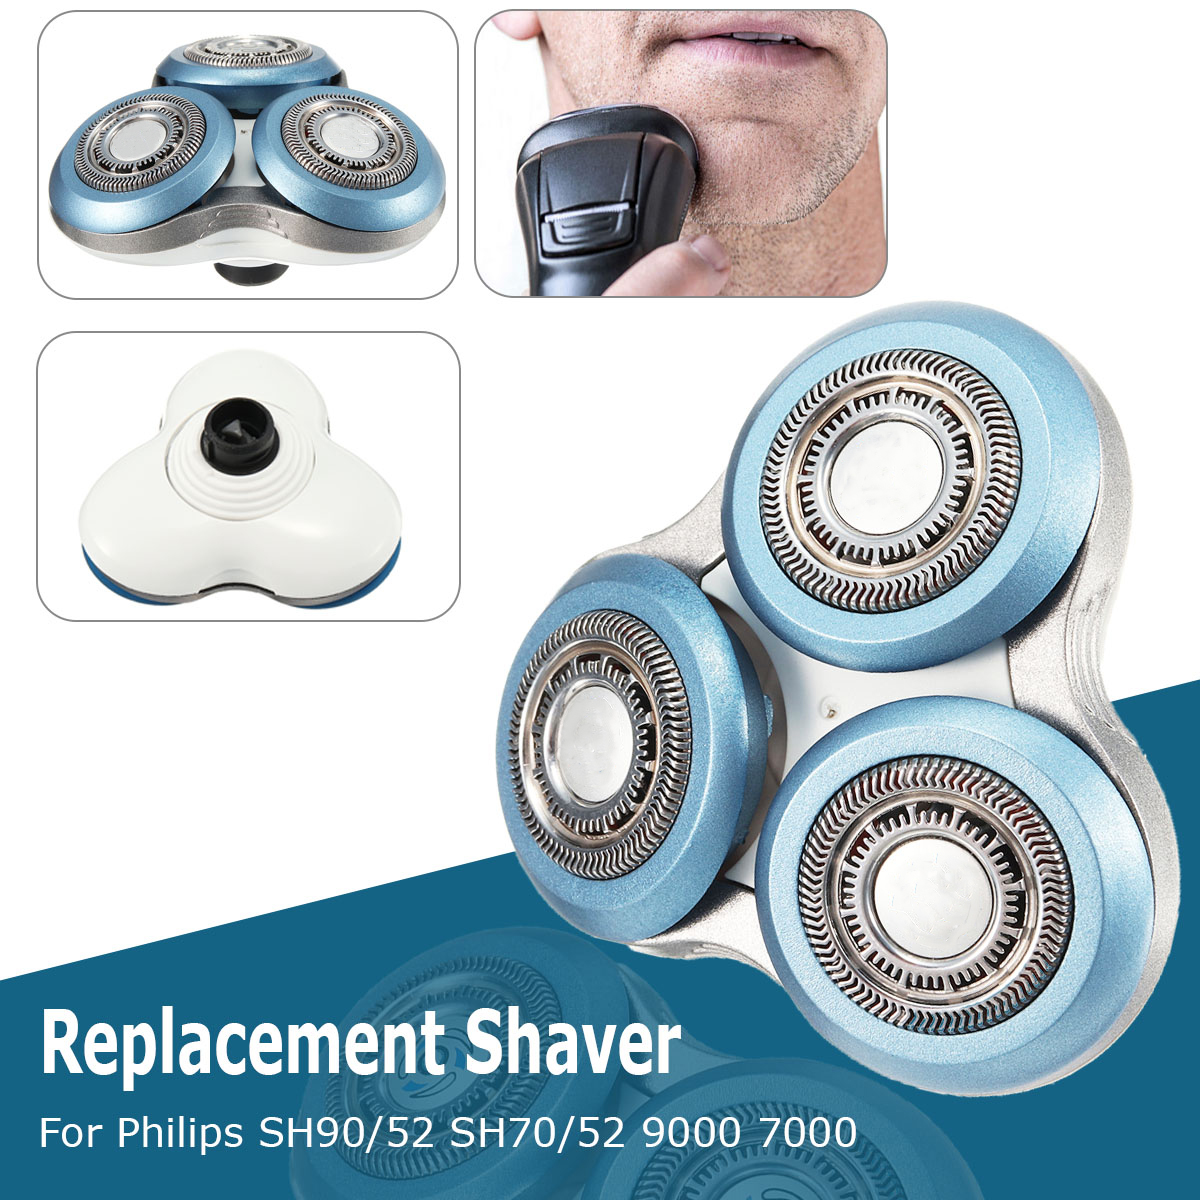 Replacement Shaver Head For Philips SH90/52 SH70/52 9000 7000 RQ12 RQ11 Series Shaving Unit Razor